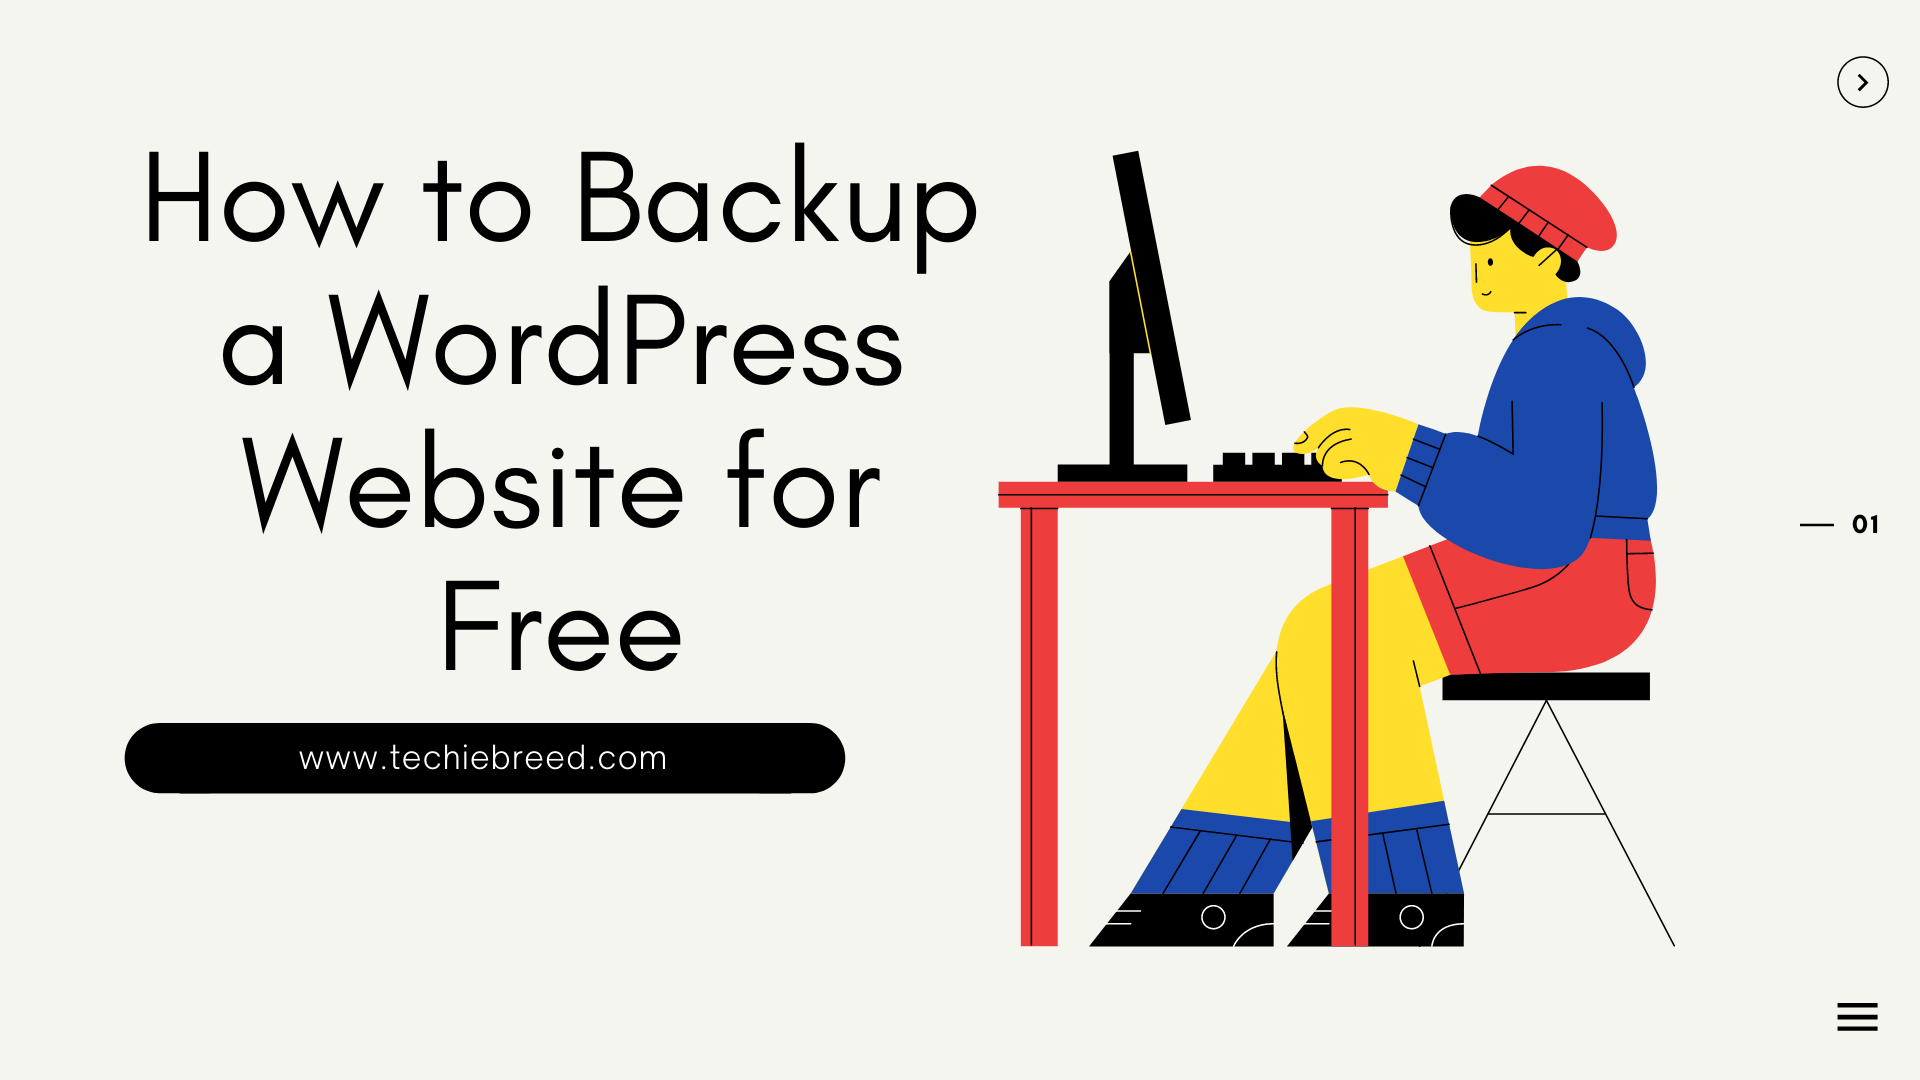 How to Backup a WordPress Website for Free